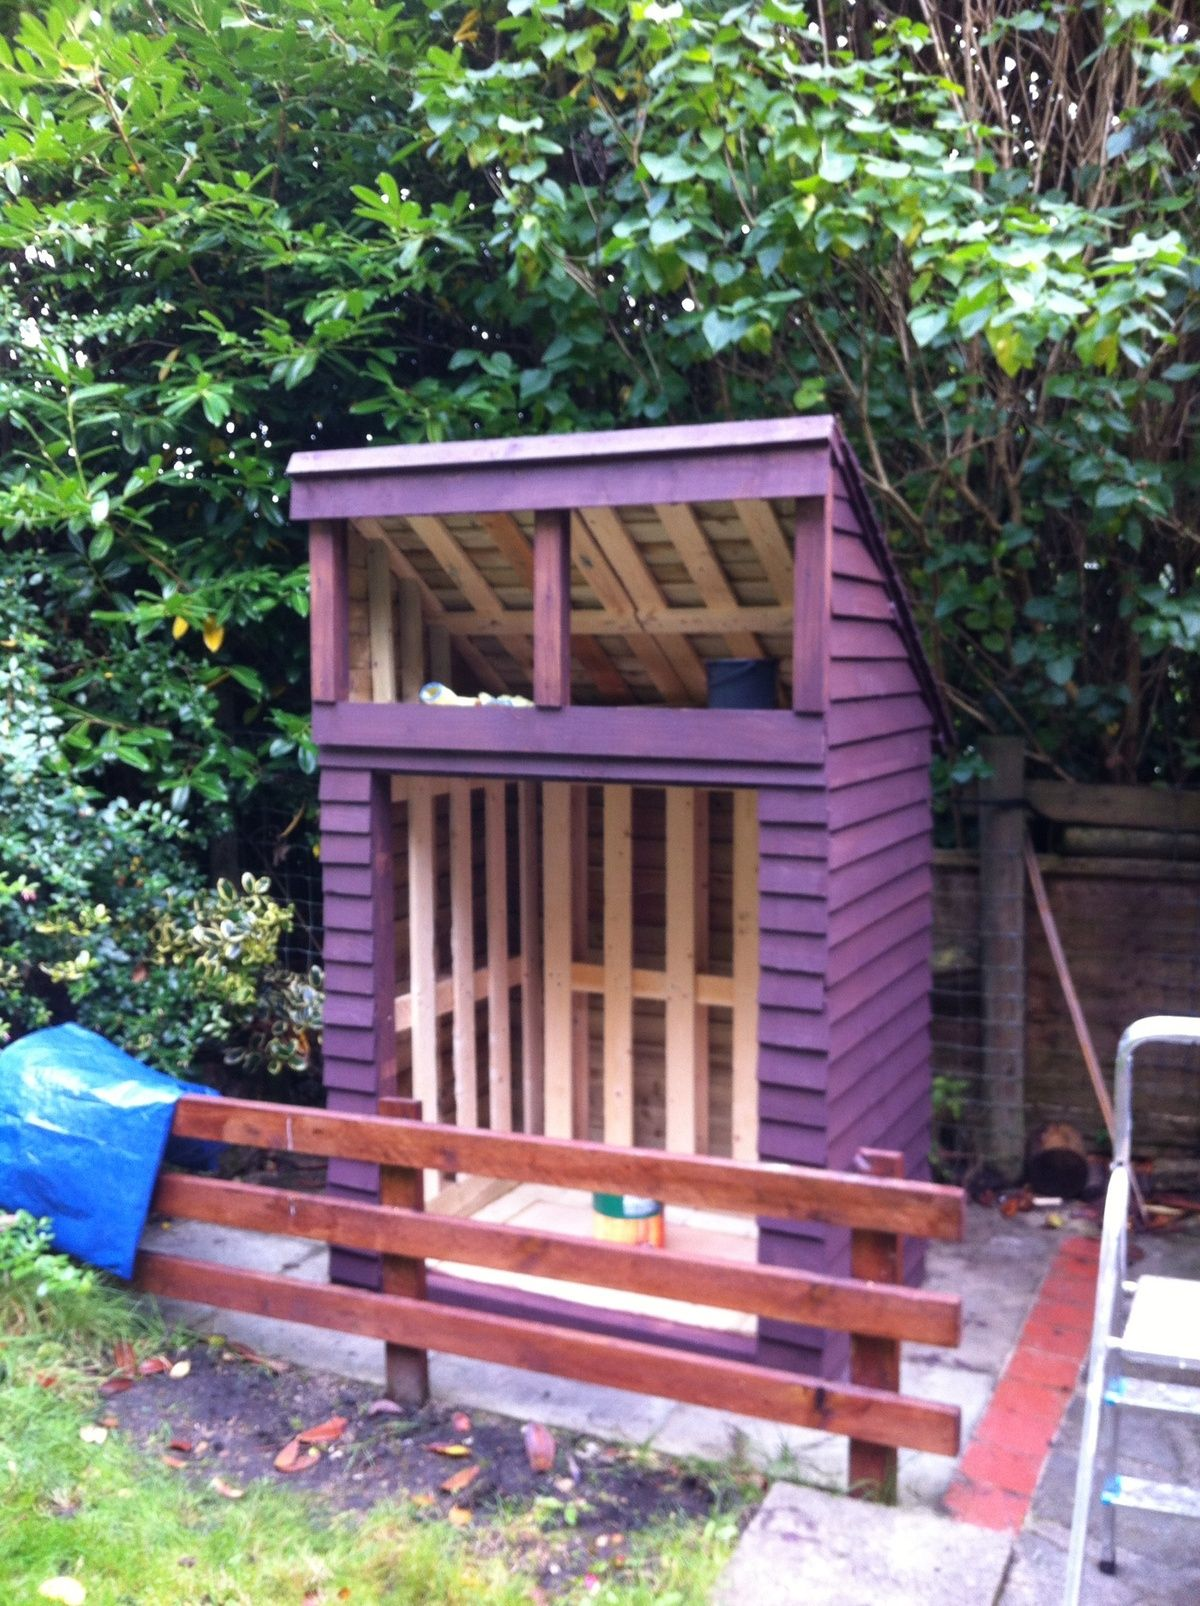 Log store DIY w/pallets | Recycled garden, Log store